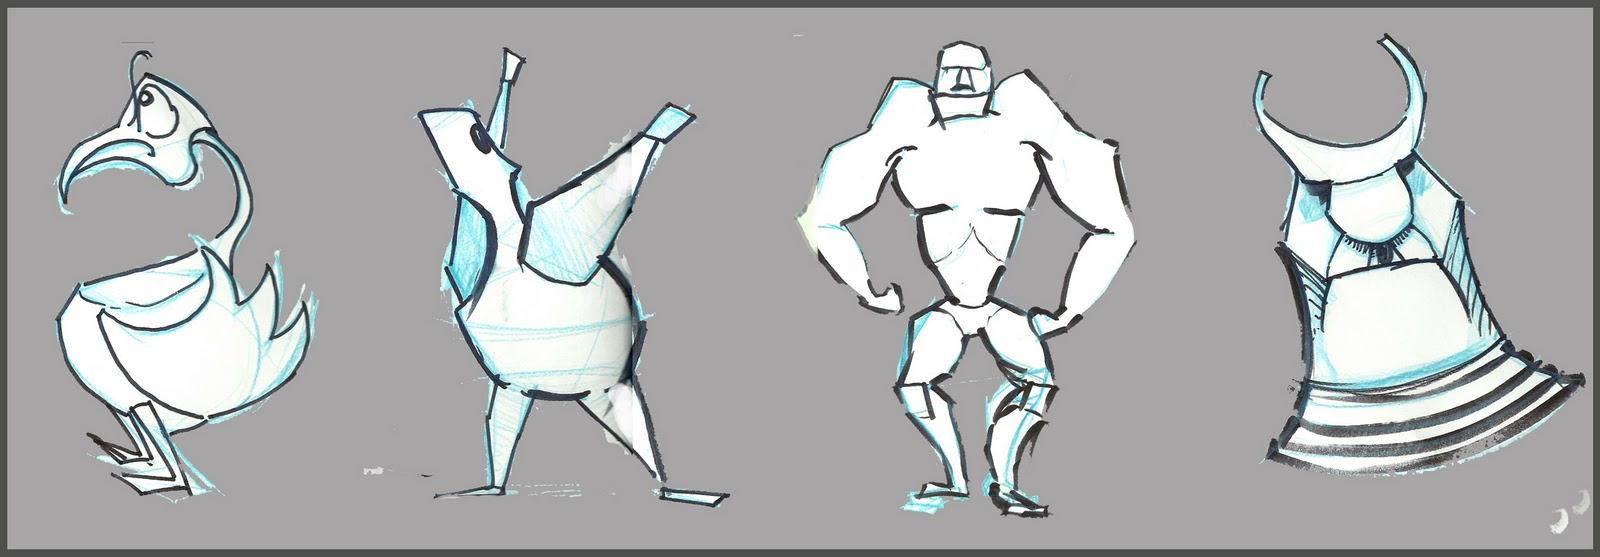 Character Design Shape Theory : Yolantele character design lecture shapes in